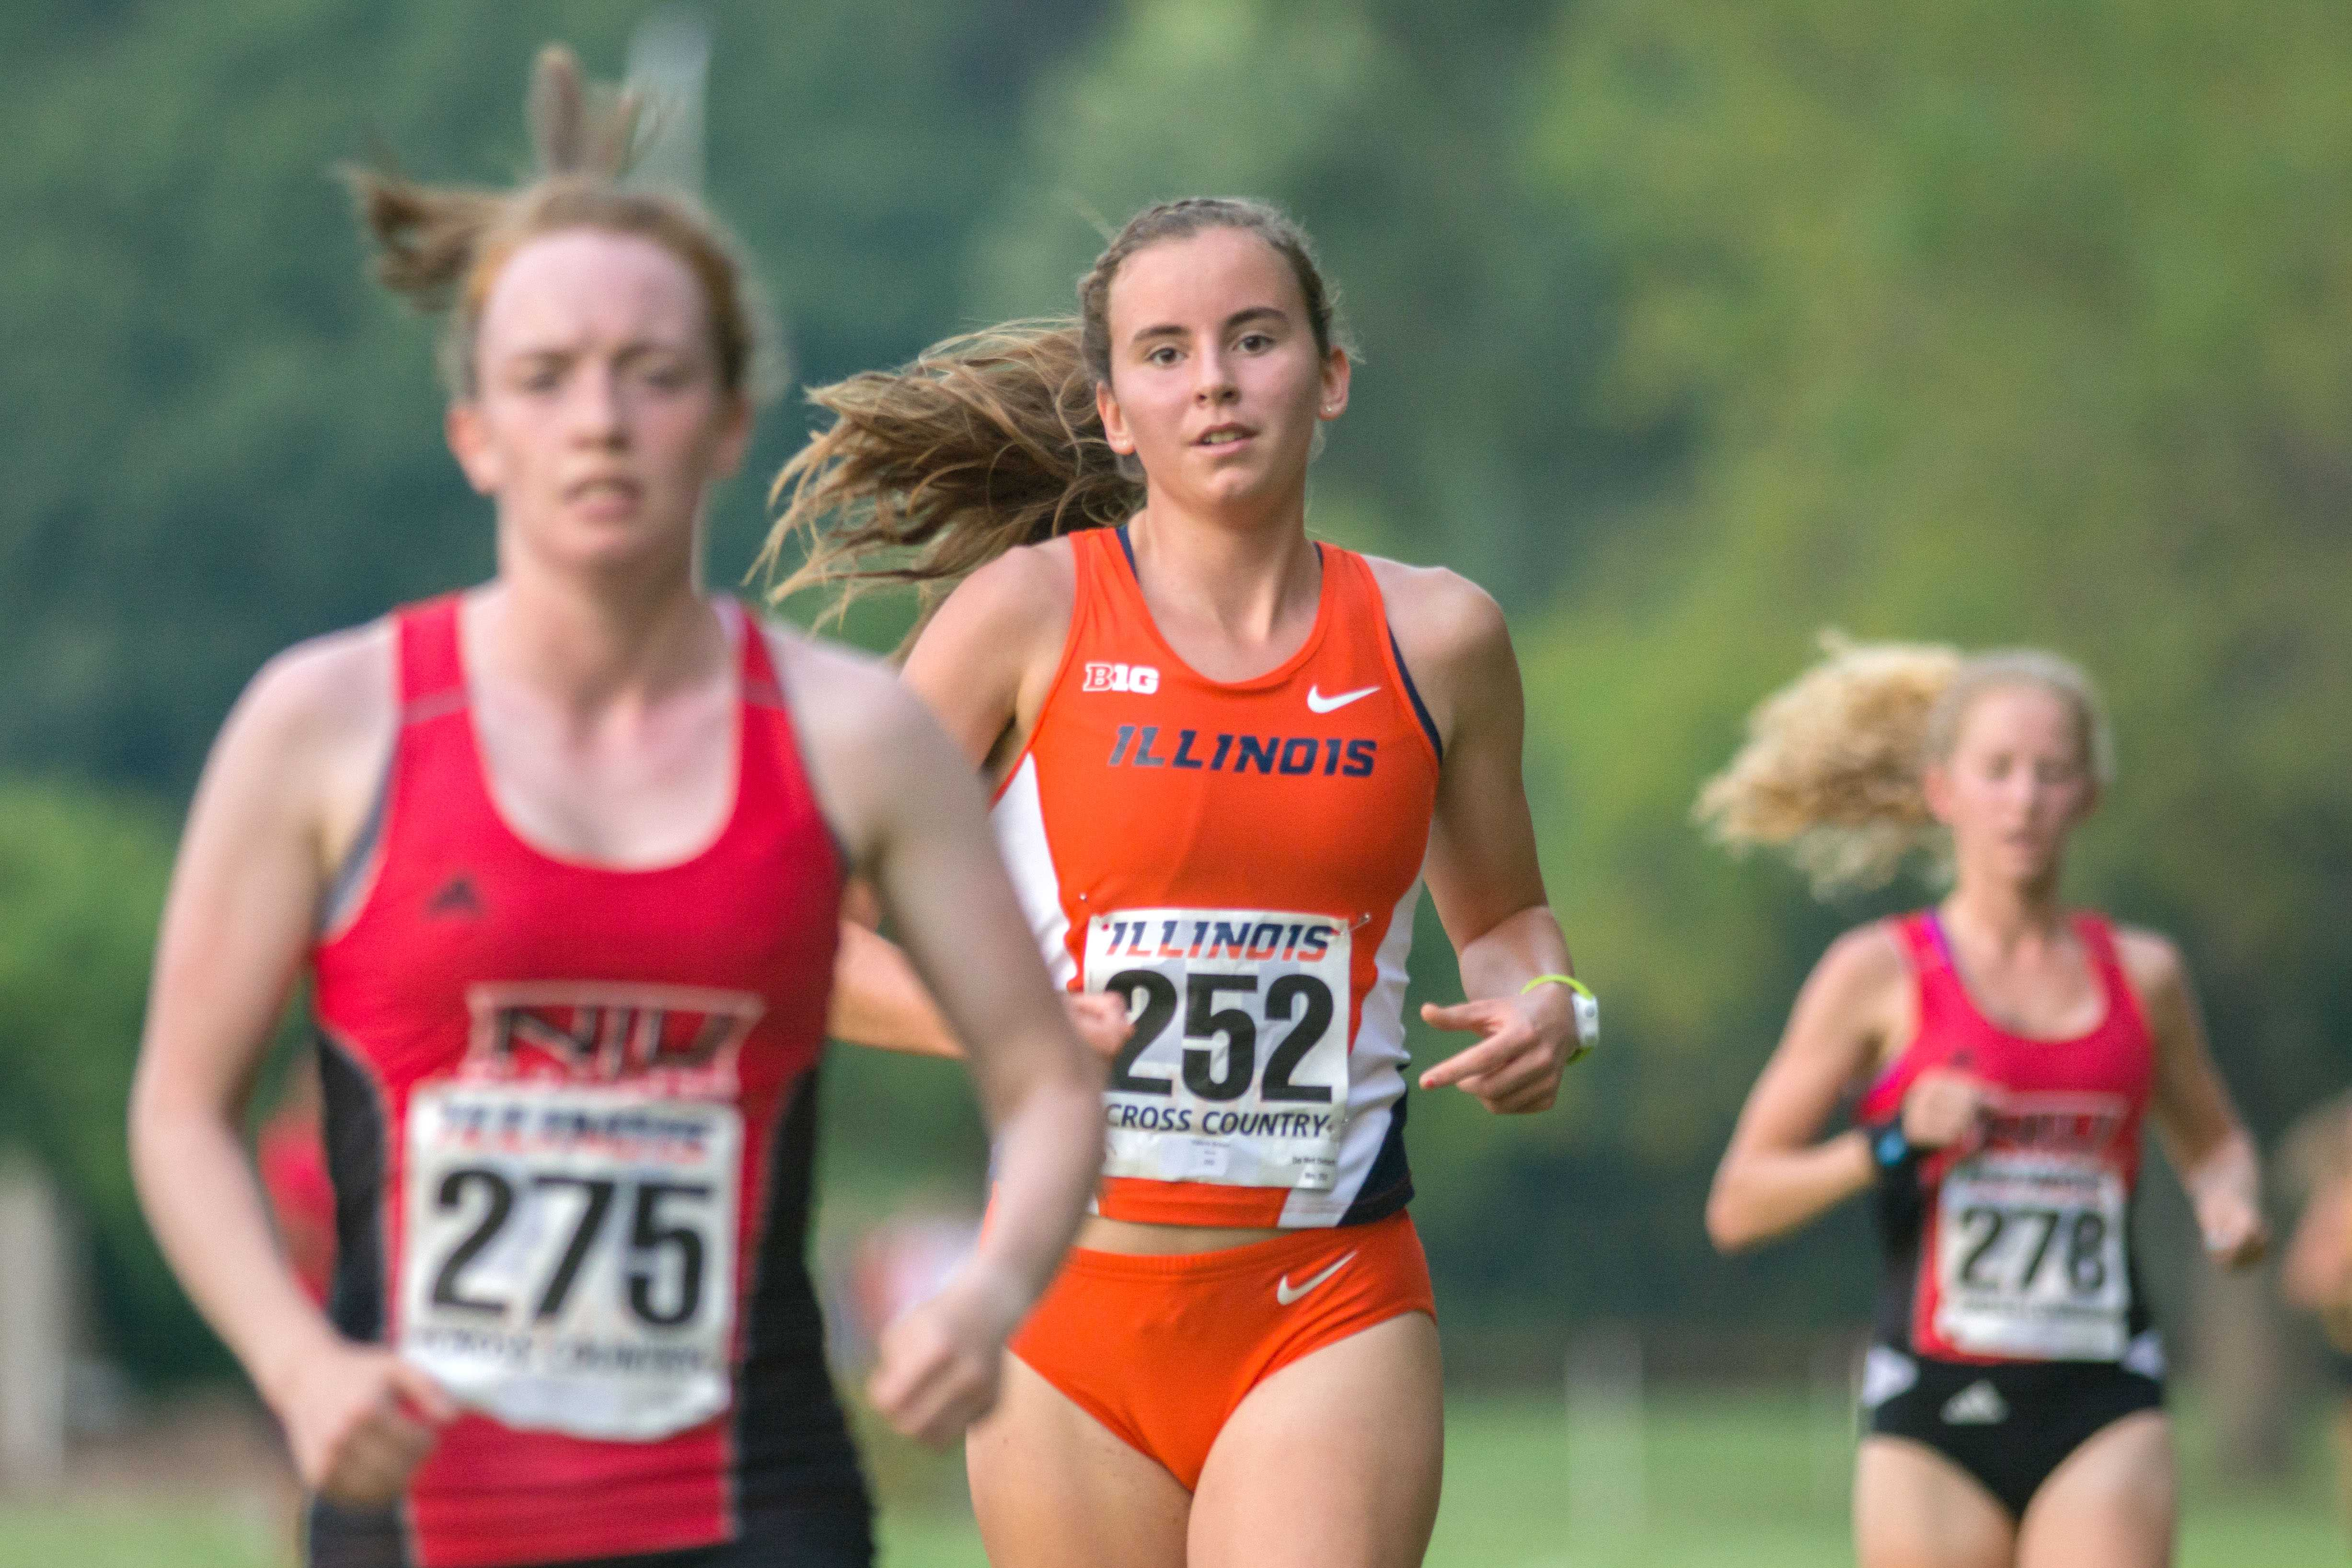 Valerie Bobart(252) keeping her cool at the Illini Challenge 2015 at the Arboretum on September 4.